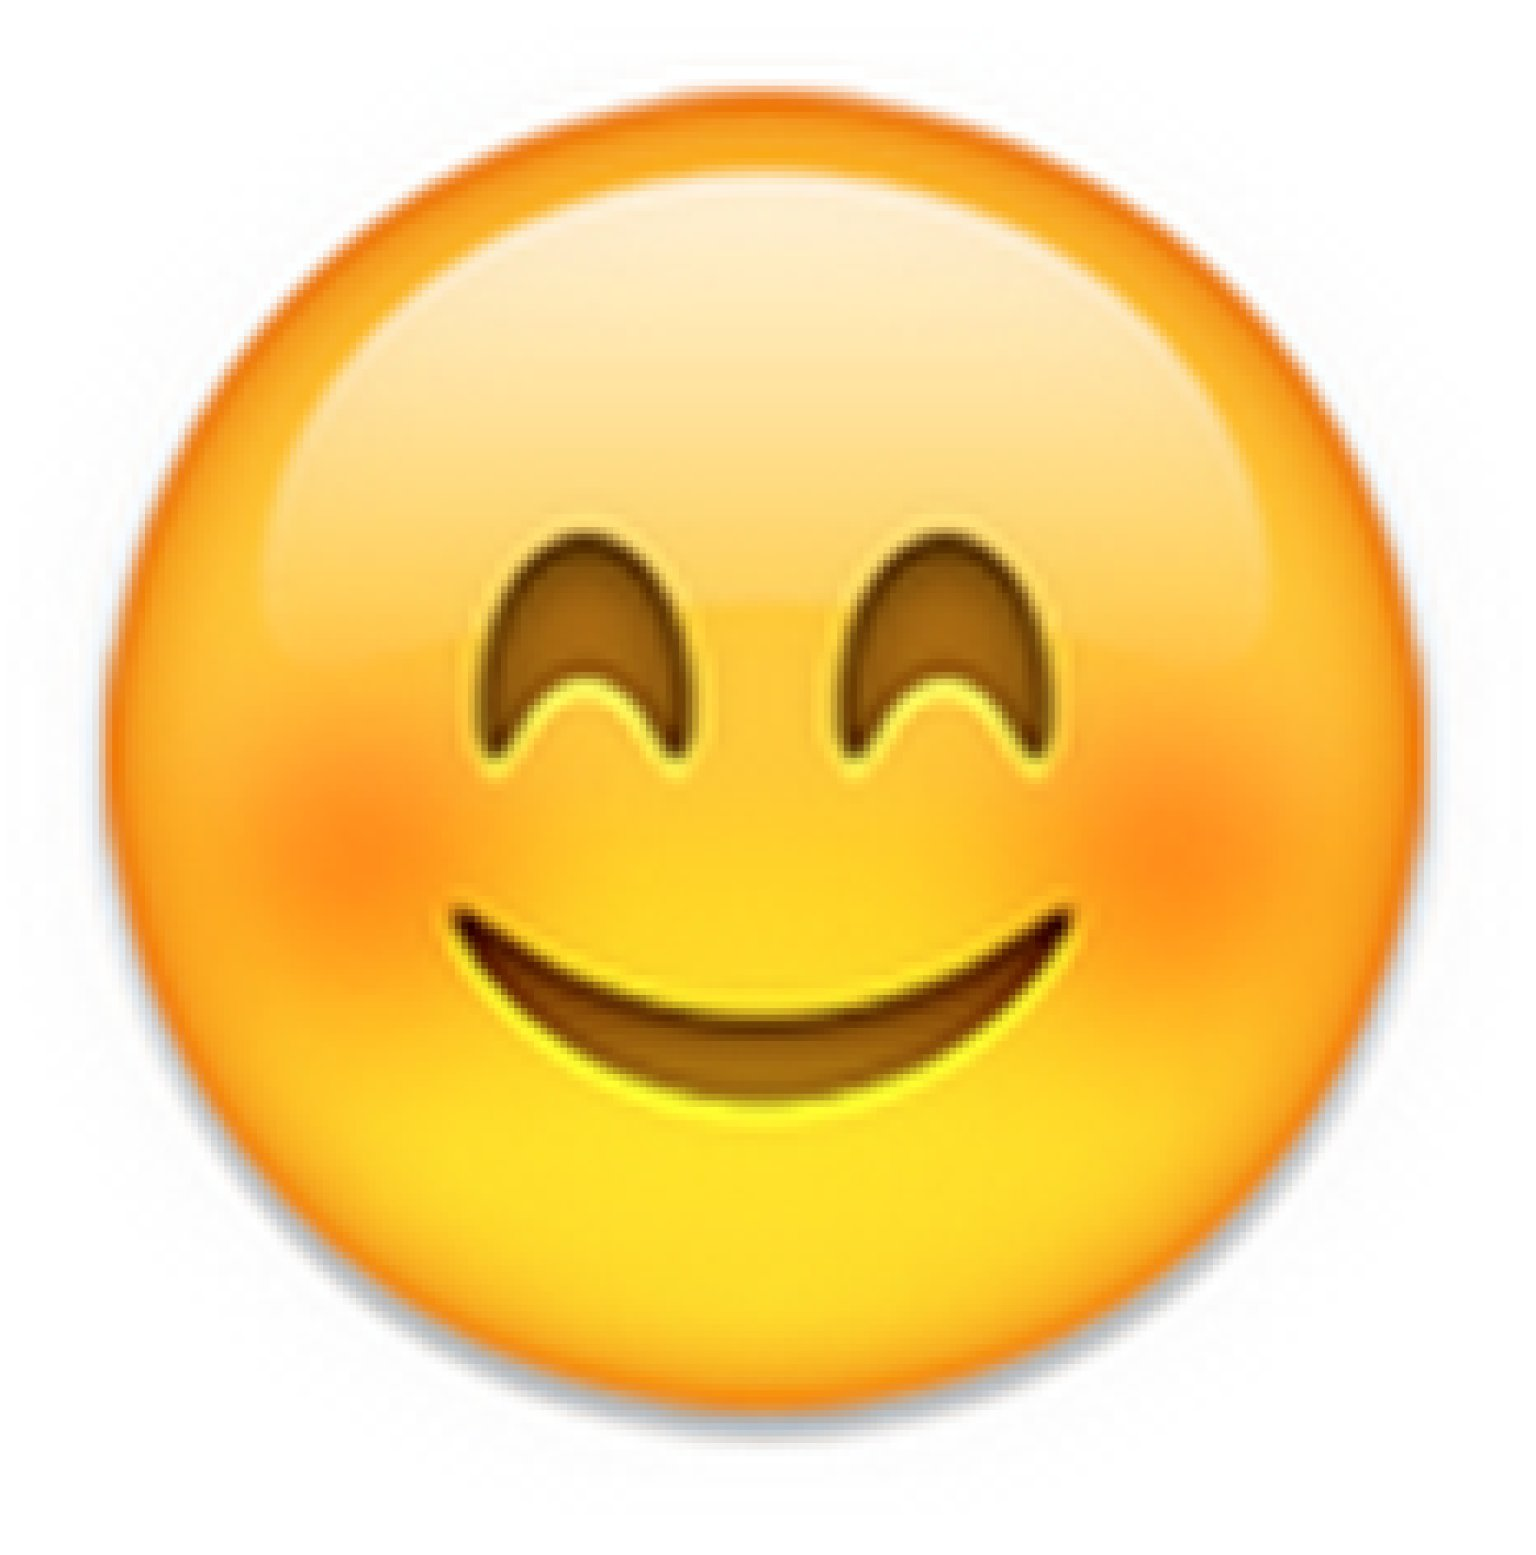 My favourite emojis are the word of the year of course i use it in every conversation and i really love the cute face which is smiling and its face is